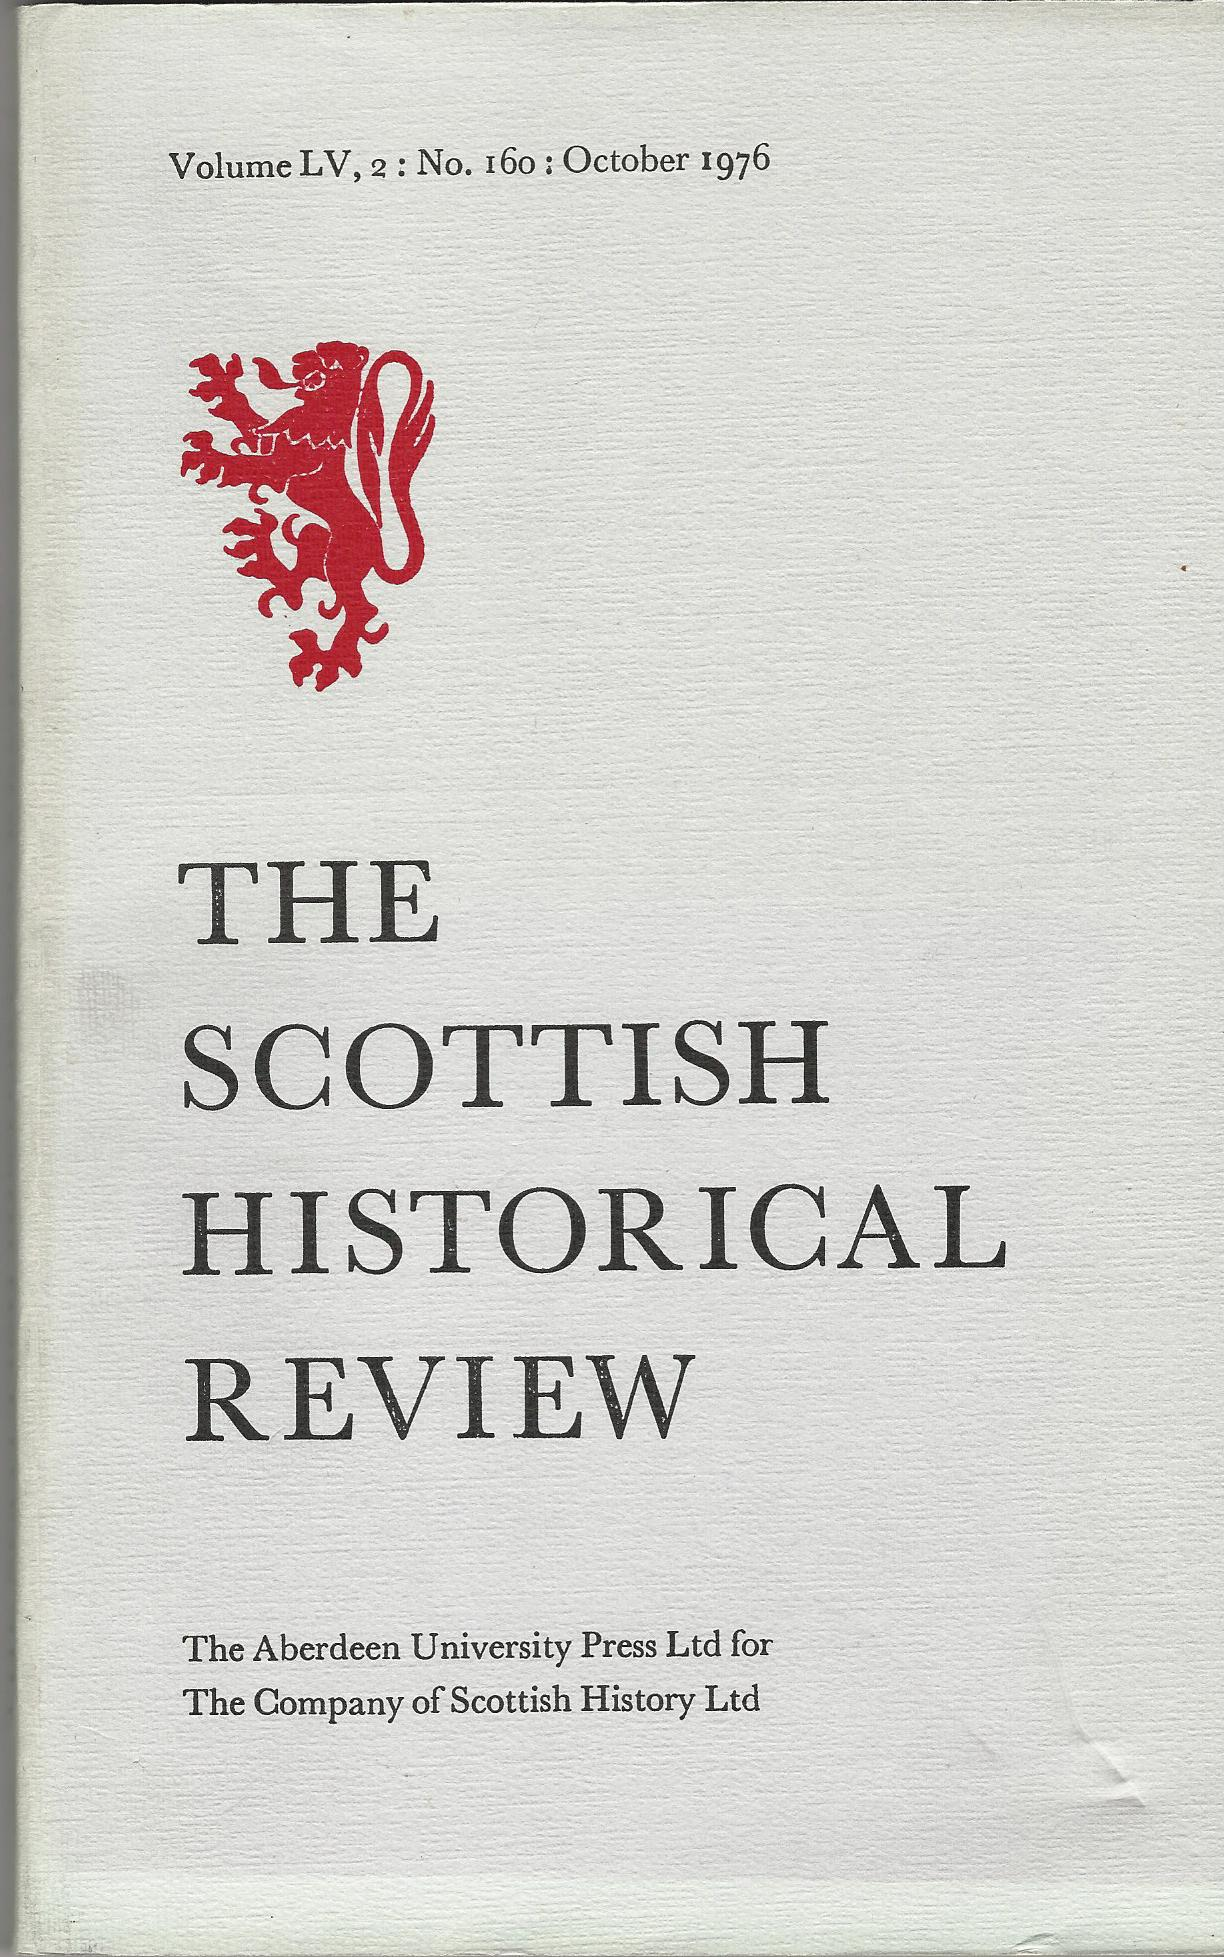 Image for The Scottish Historical Review Volume LV, 2: No. 160: October 1976